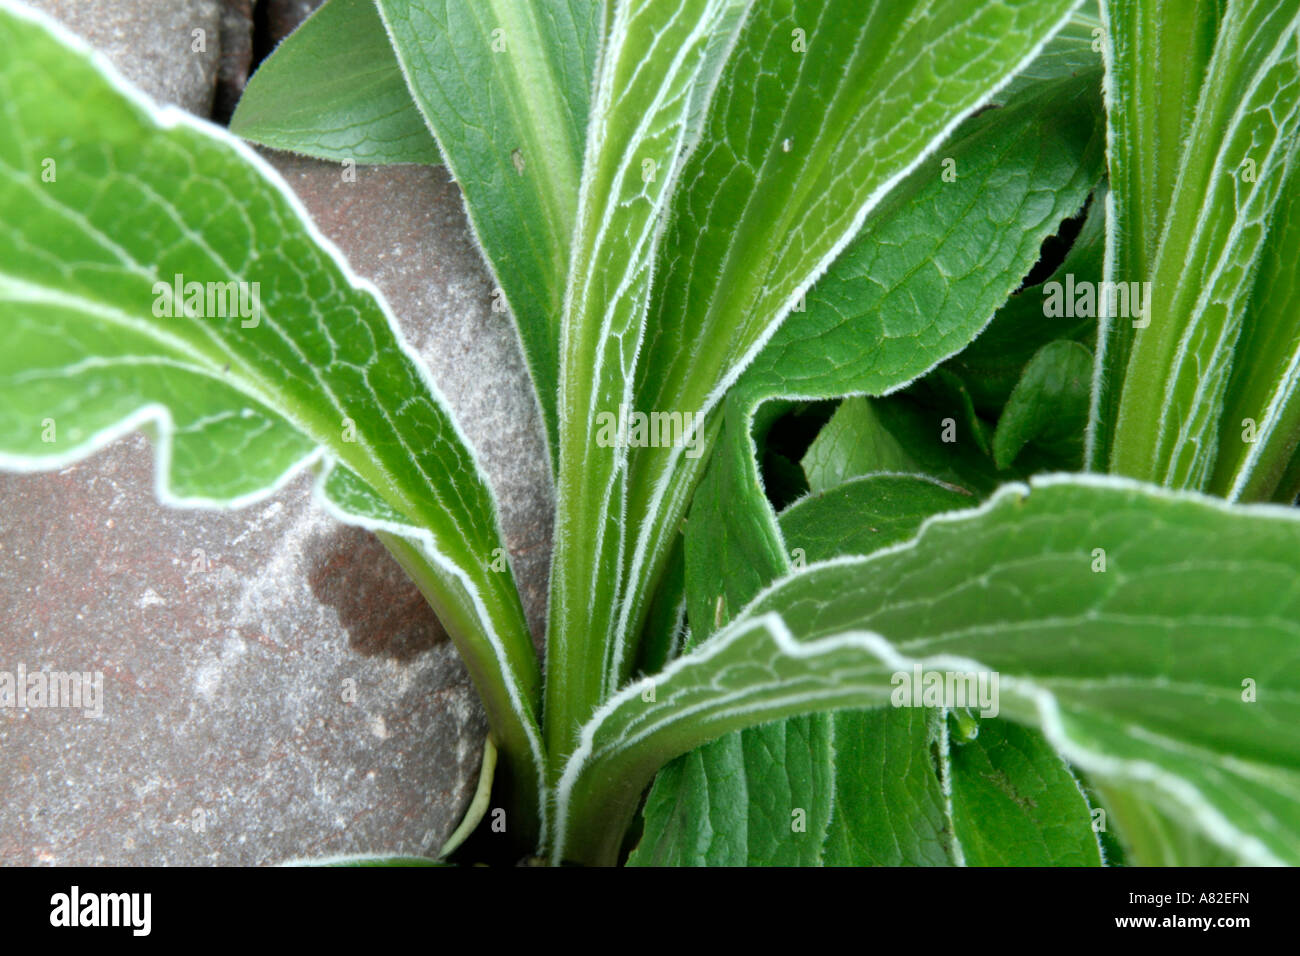 Digitalis parviflora has a distinctive silver margin to the leaf - Stock Image